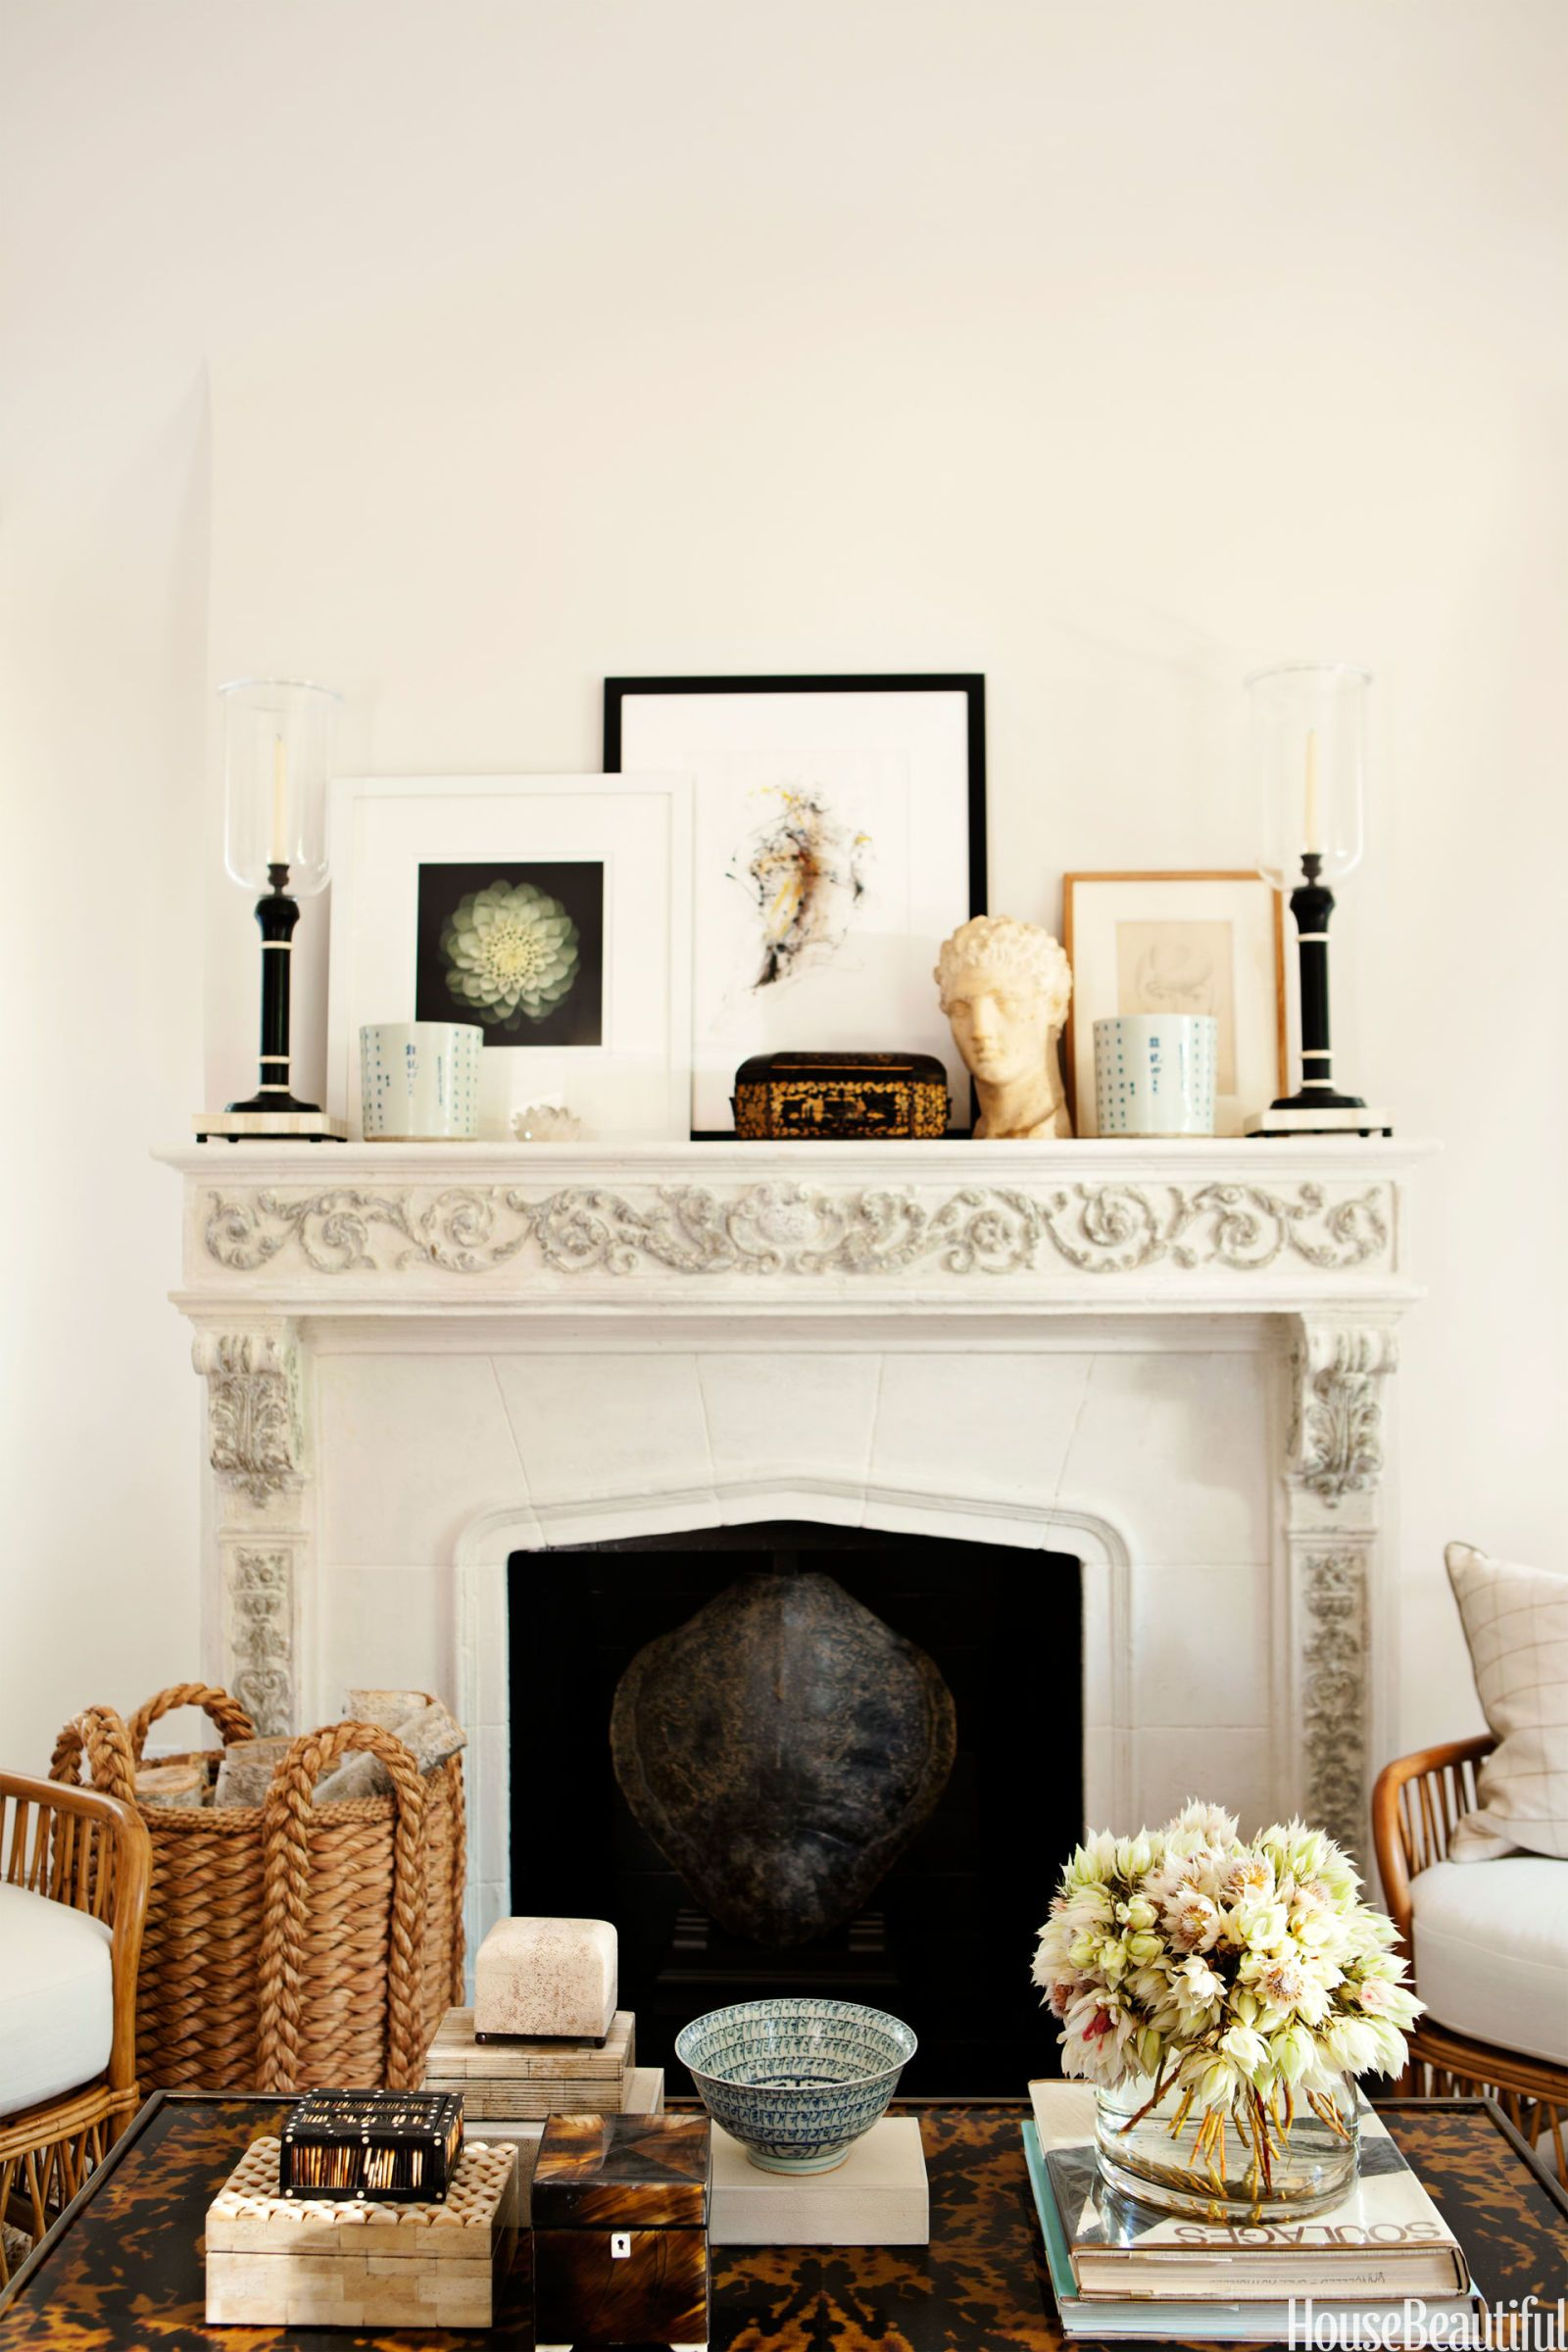 In The Living Room Of A West Hollywood House Mantel And Coffee Table Display Designer Mark D Sikes S Pions Bo Books Art From China